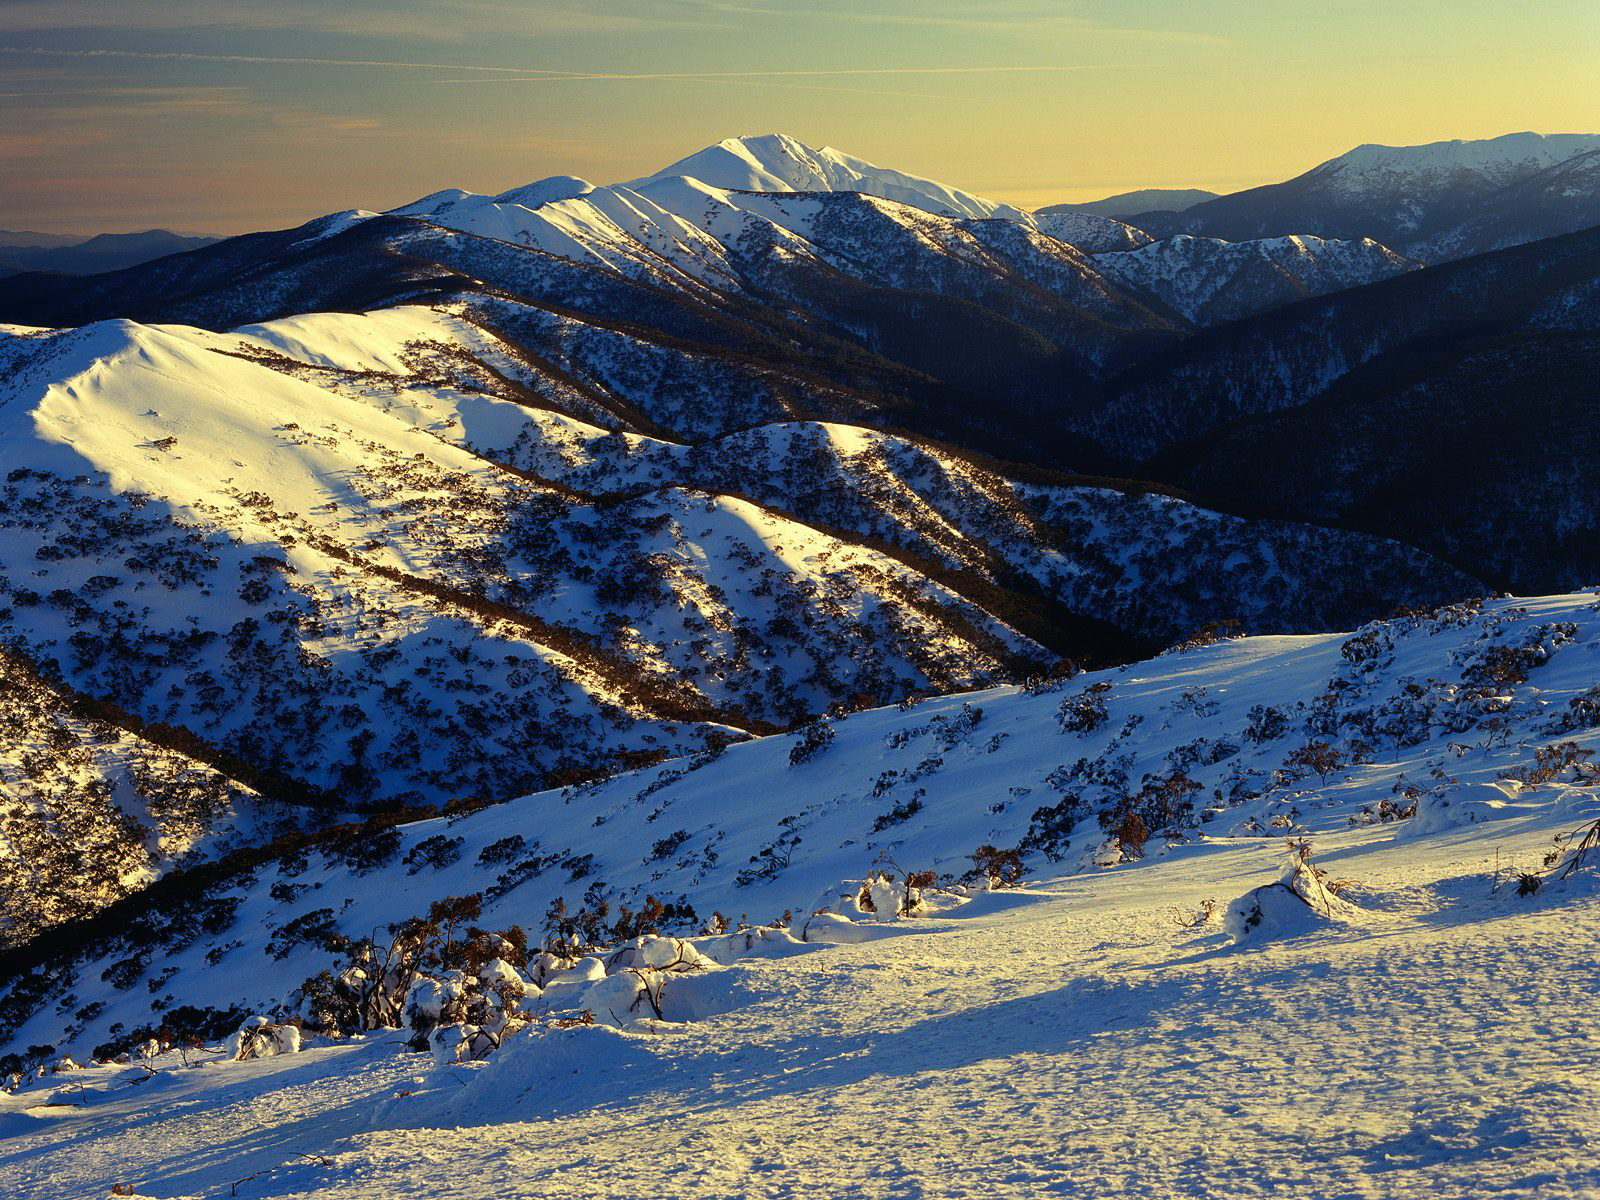 Sunrise on Mount Featherto Australia